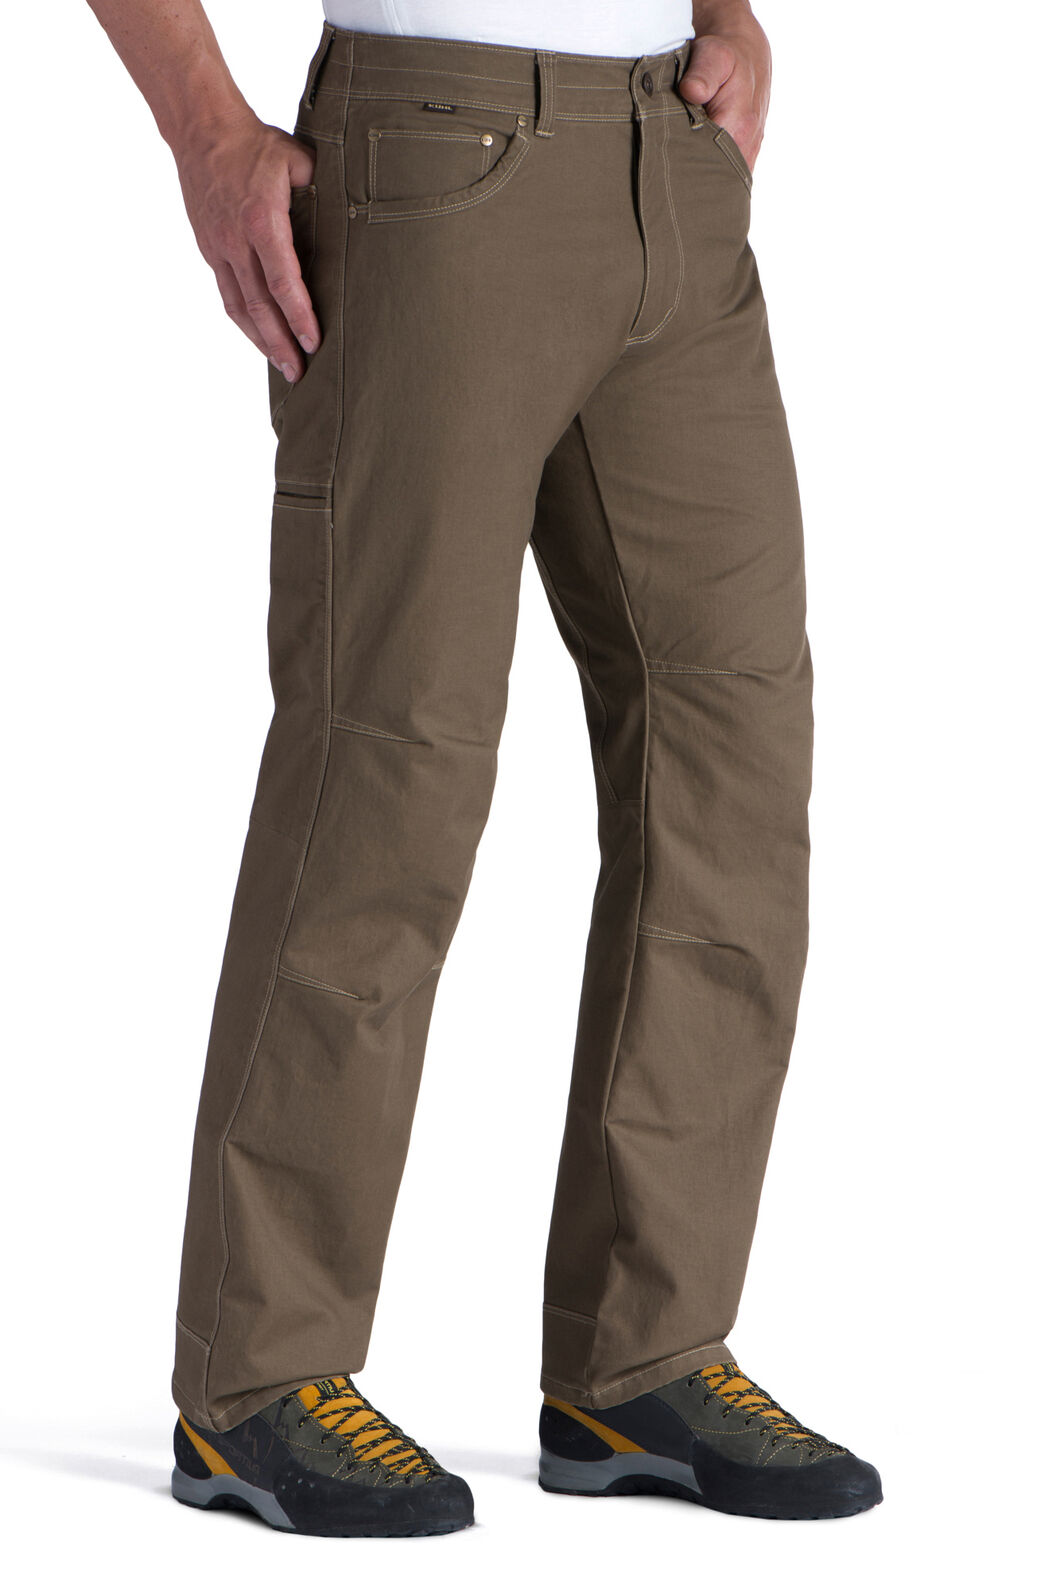 Kuhl Rydr Pants (30 inch) - Men's, Khaki, hi-res